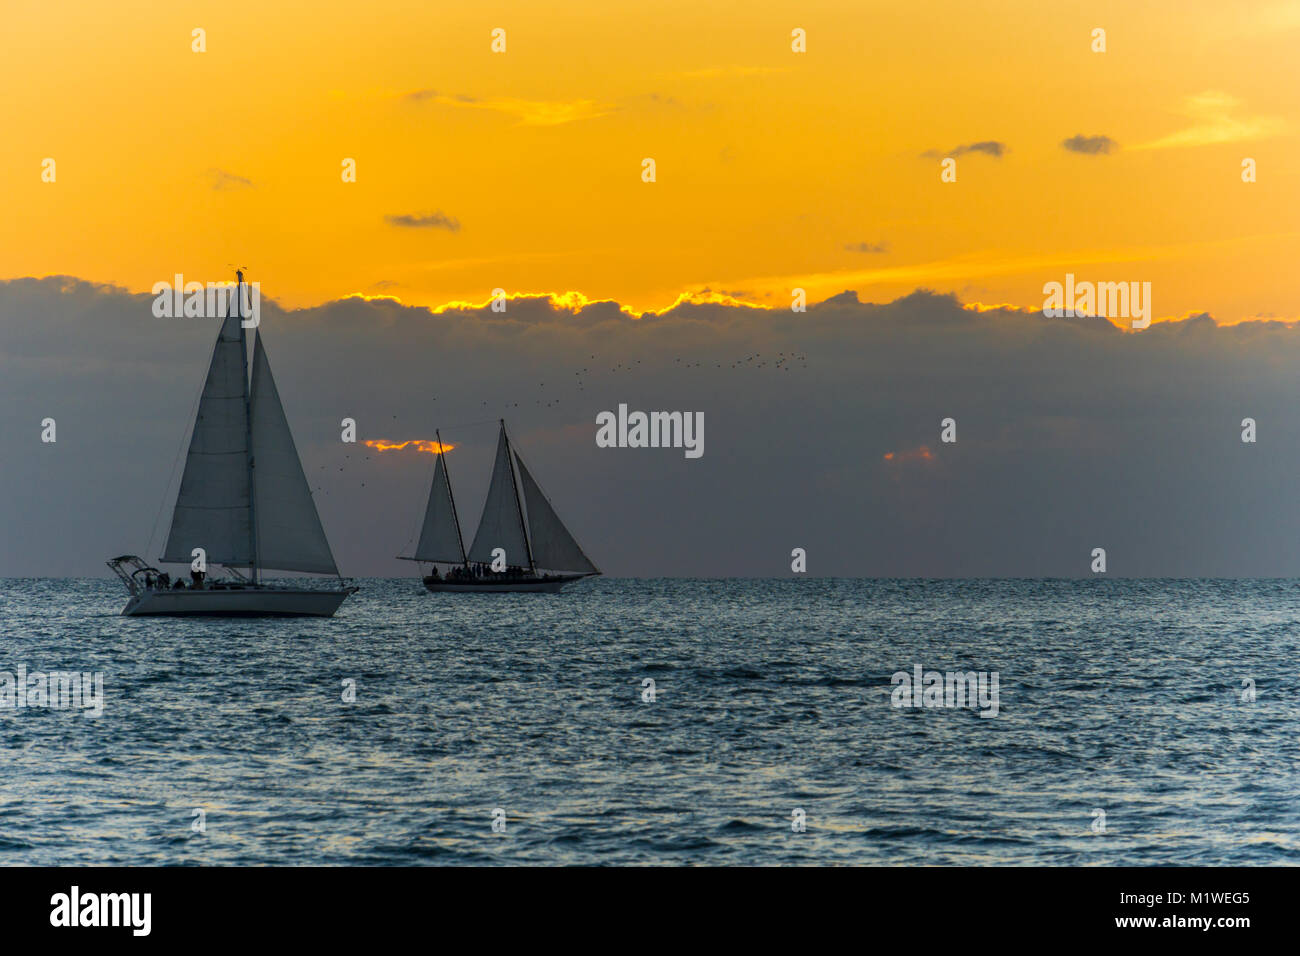 USA, Florida, Orange sunset behind clouds at key west with two sailing boats on the water - Stock Image